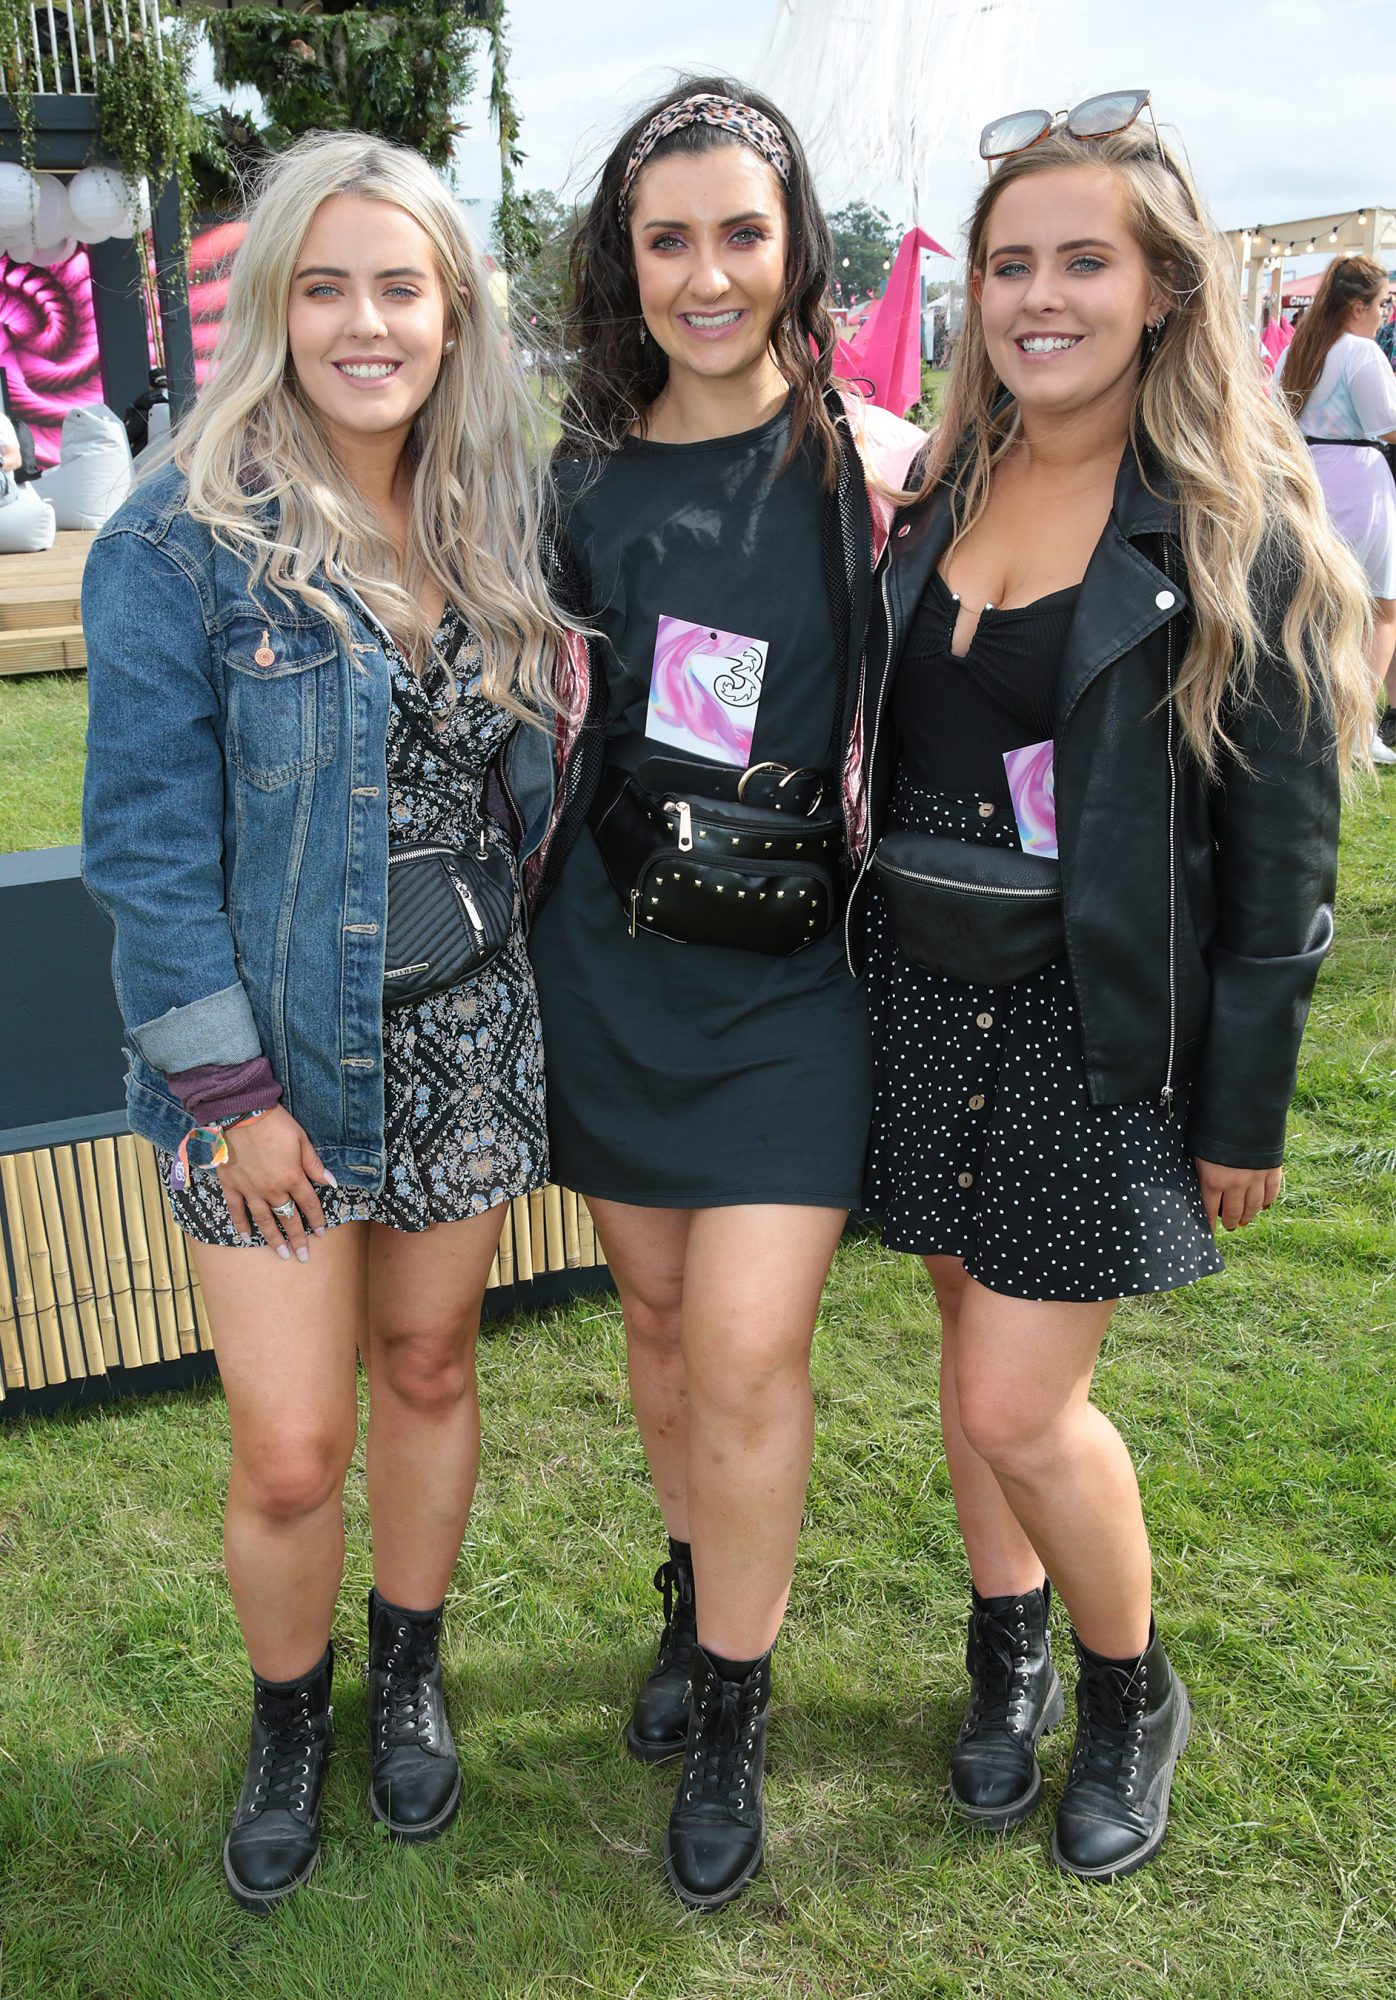 Megan Dunne, Jenny Ratigan and Lauren Dunne, from Navan, Co. Meath, at Three's Charge & Chill at Electric Picnic at Stradbally, Co. Laois. Picture: Brian McEvoyNo Repro fee for one use